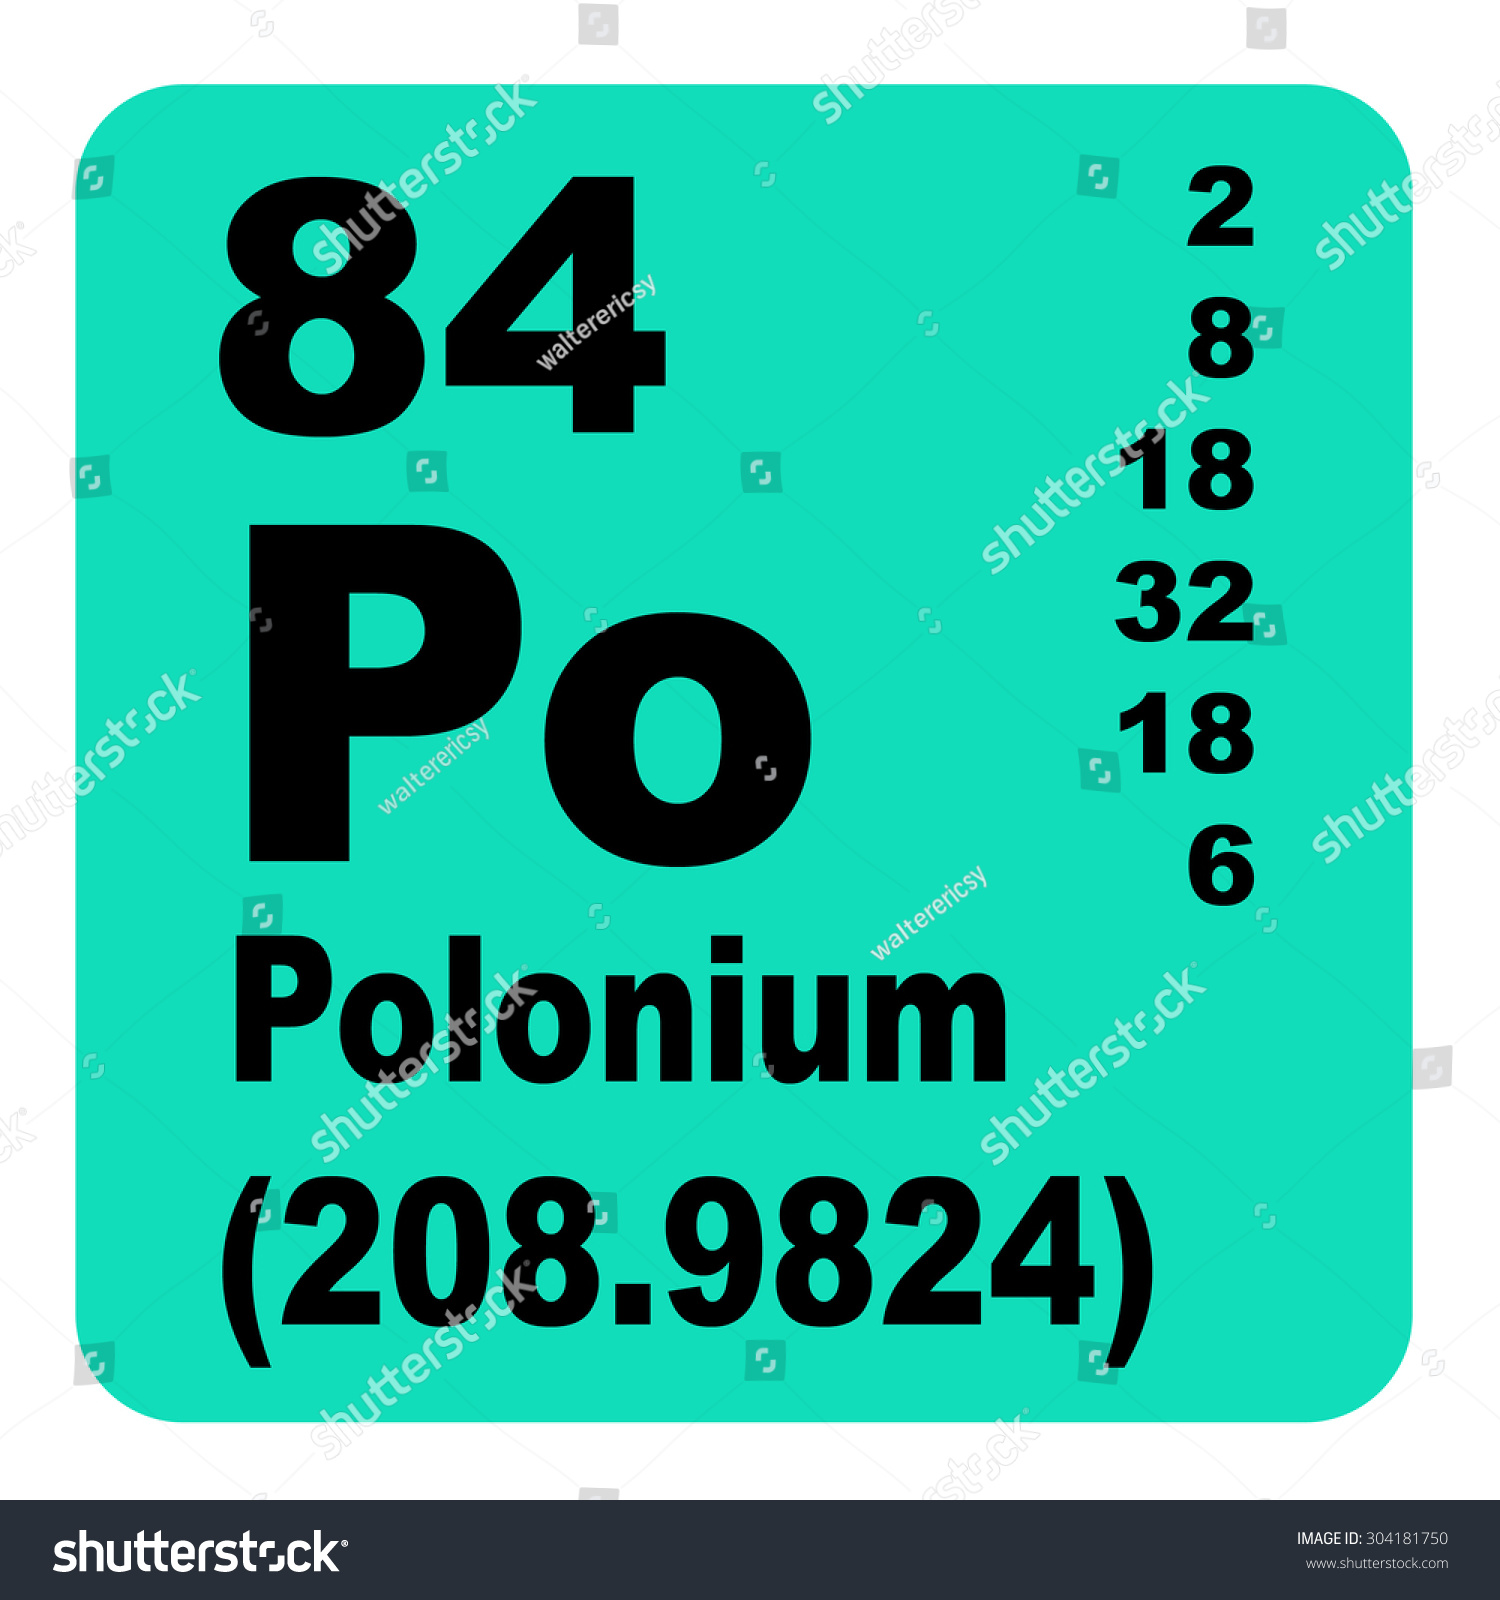 Polonium periodic table elements stock illustration 304181750 polonium periodic table of elements gamestrikefo Choice Image